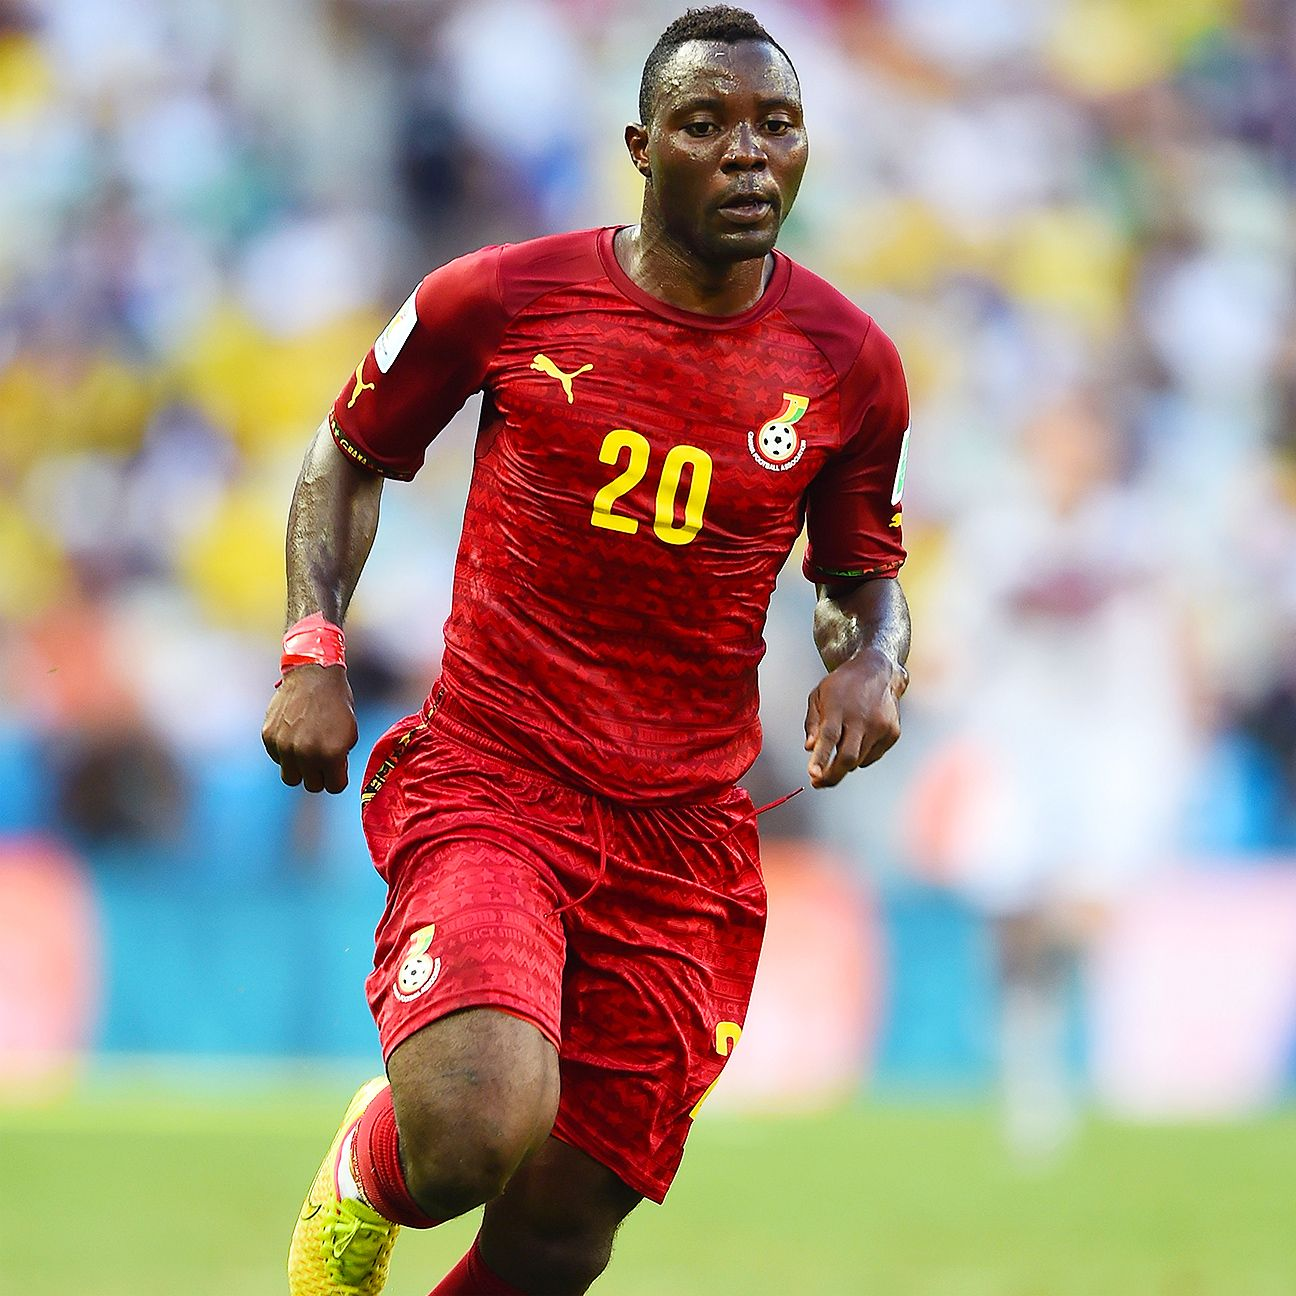 Ghana will be without defender Kwadwo Asamoah at the African Nations' Cup after the Juventus man suffered a knee injury.